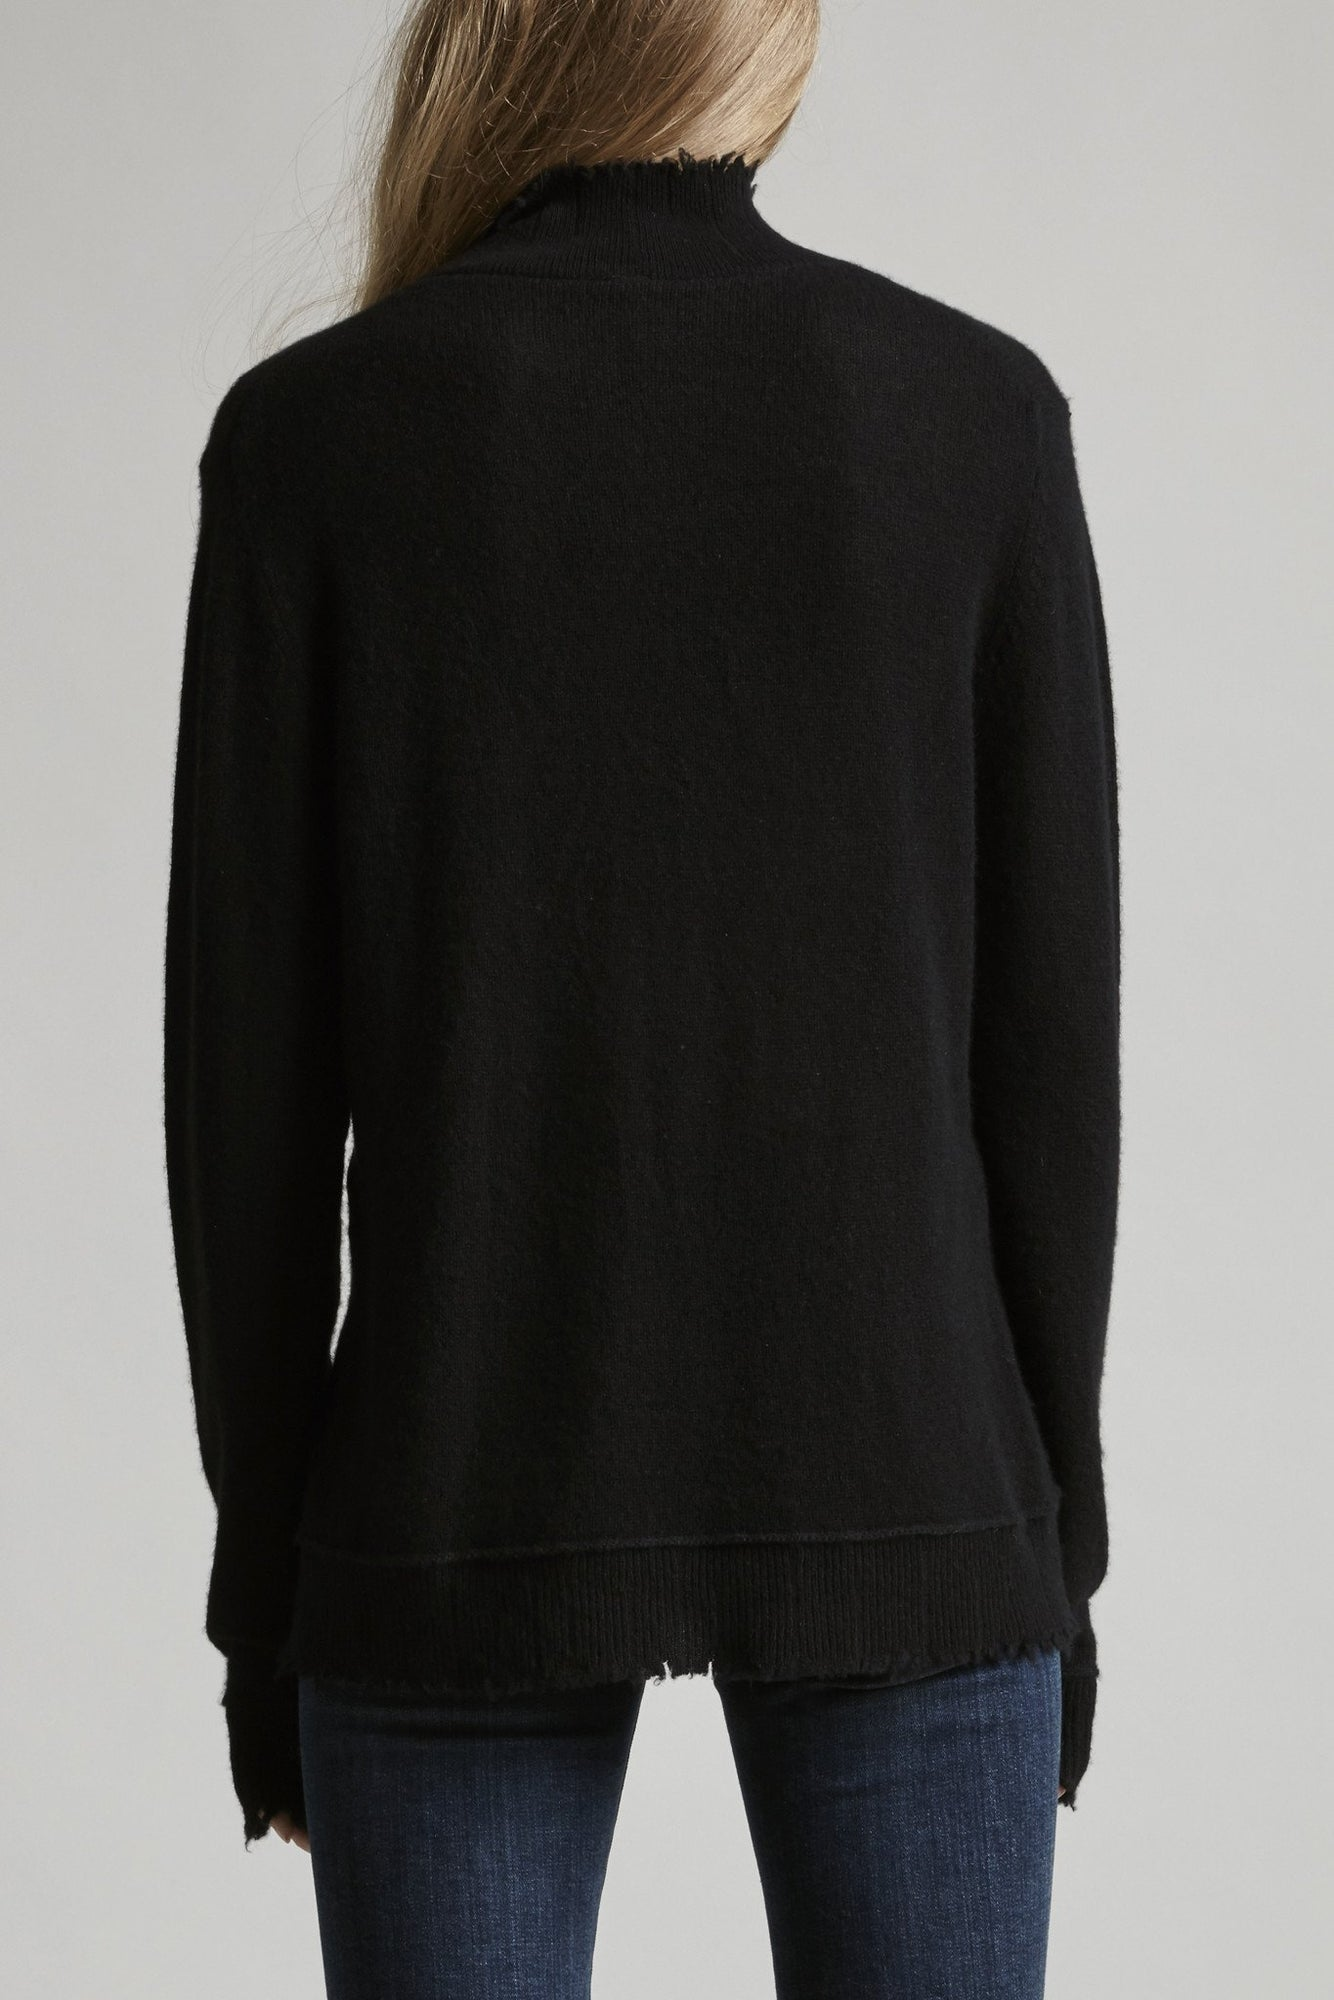 Distressed Edge Cashmere Turtleneck - Black